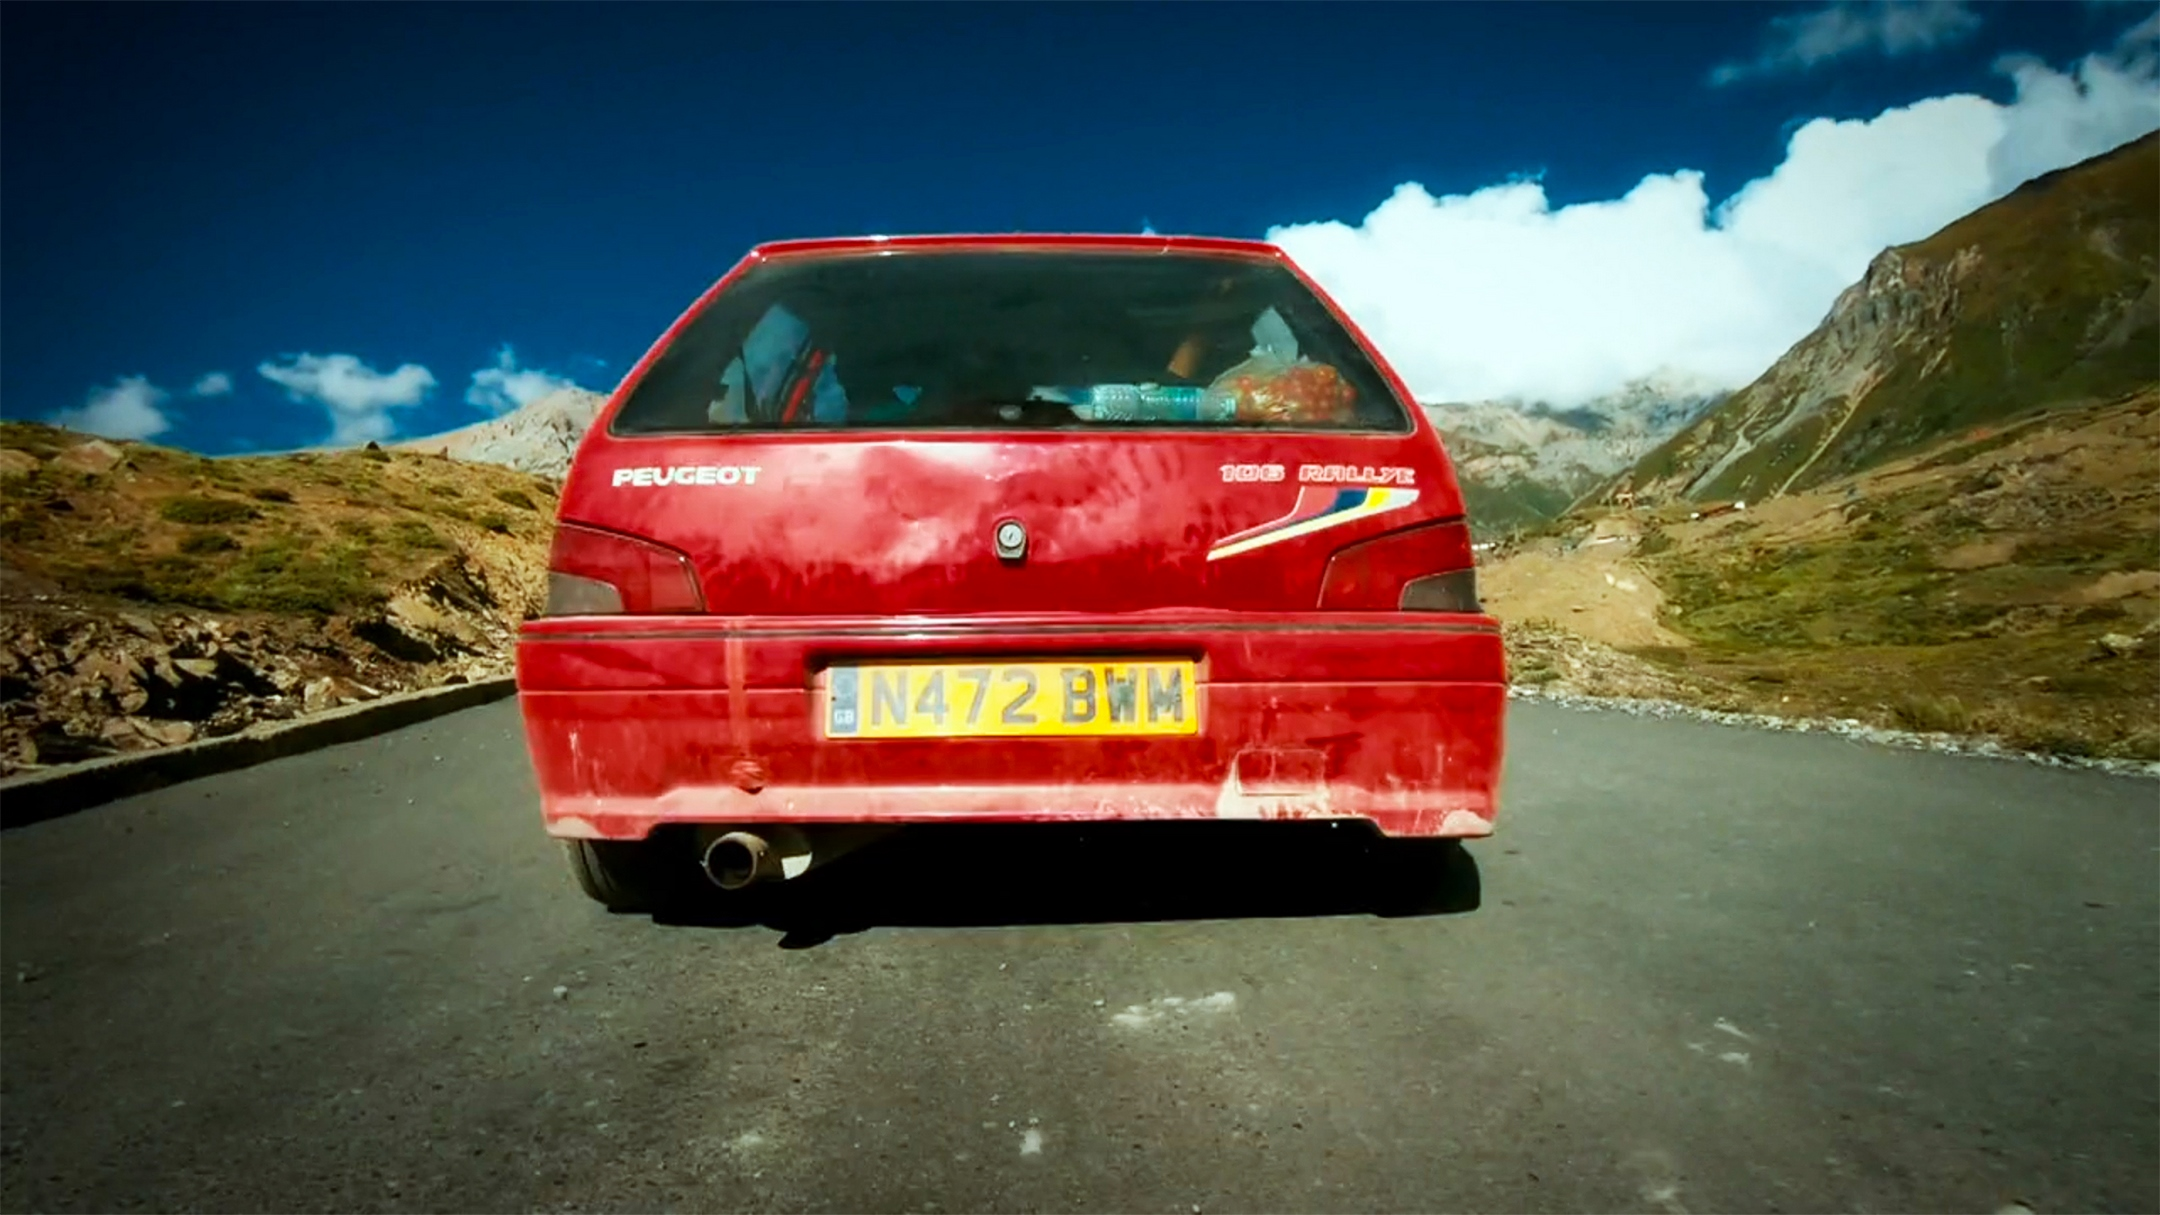 Peugeot_106_World of Top Gear 7